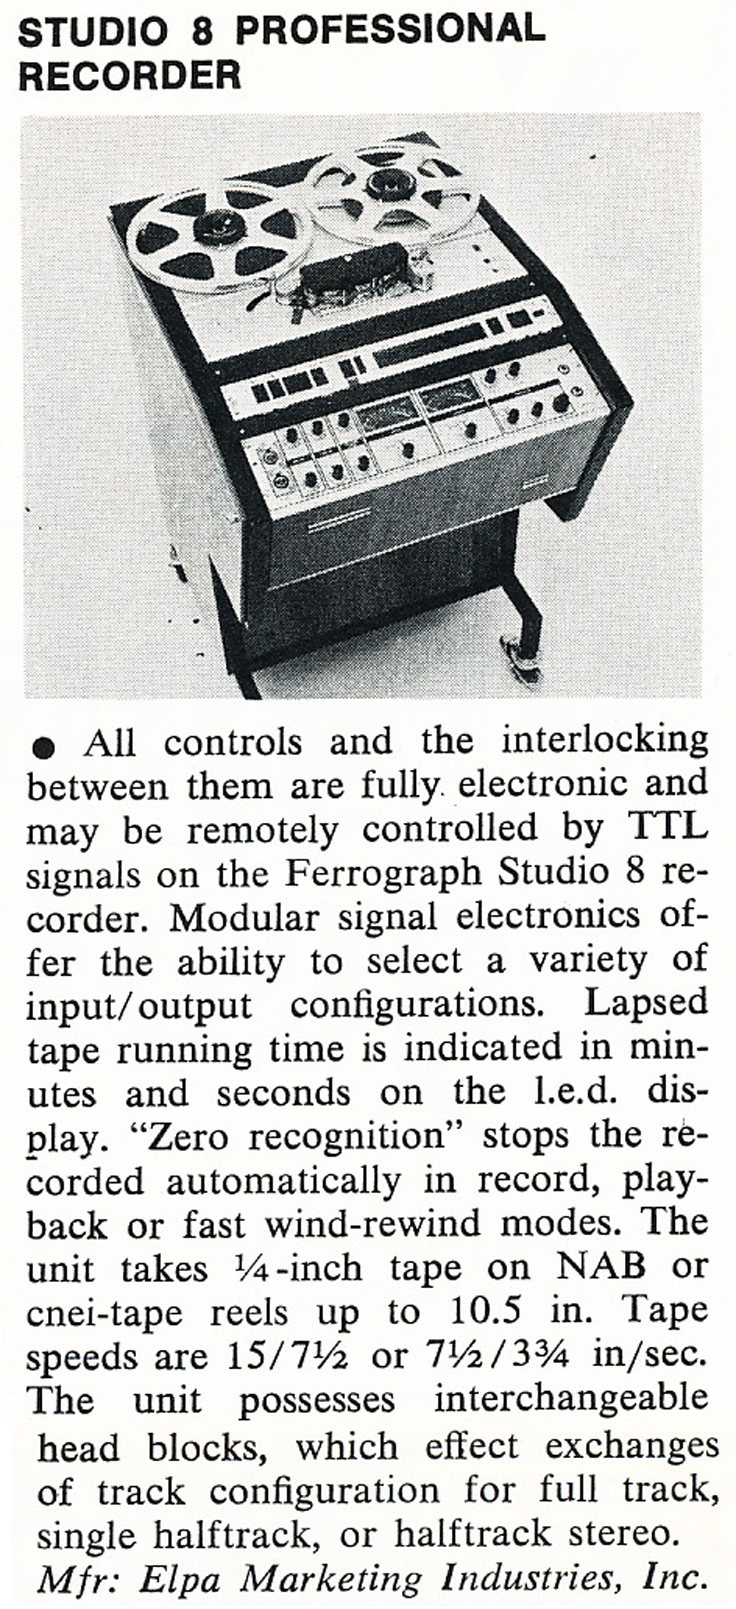 1975 review of the Ferrograph Studio 8 professional reel tape recorder in Phantom Productions' vintgae recording collection